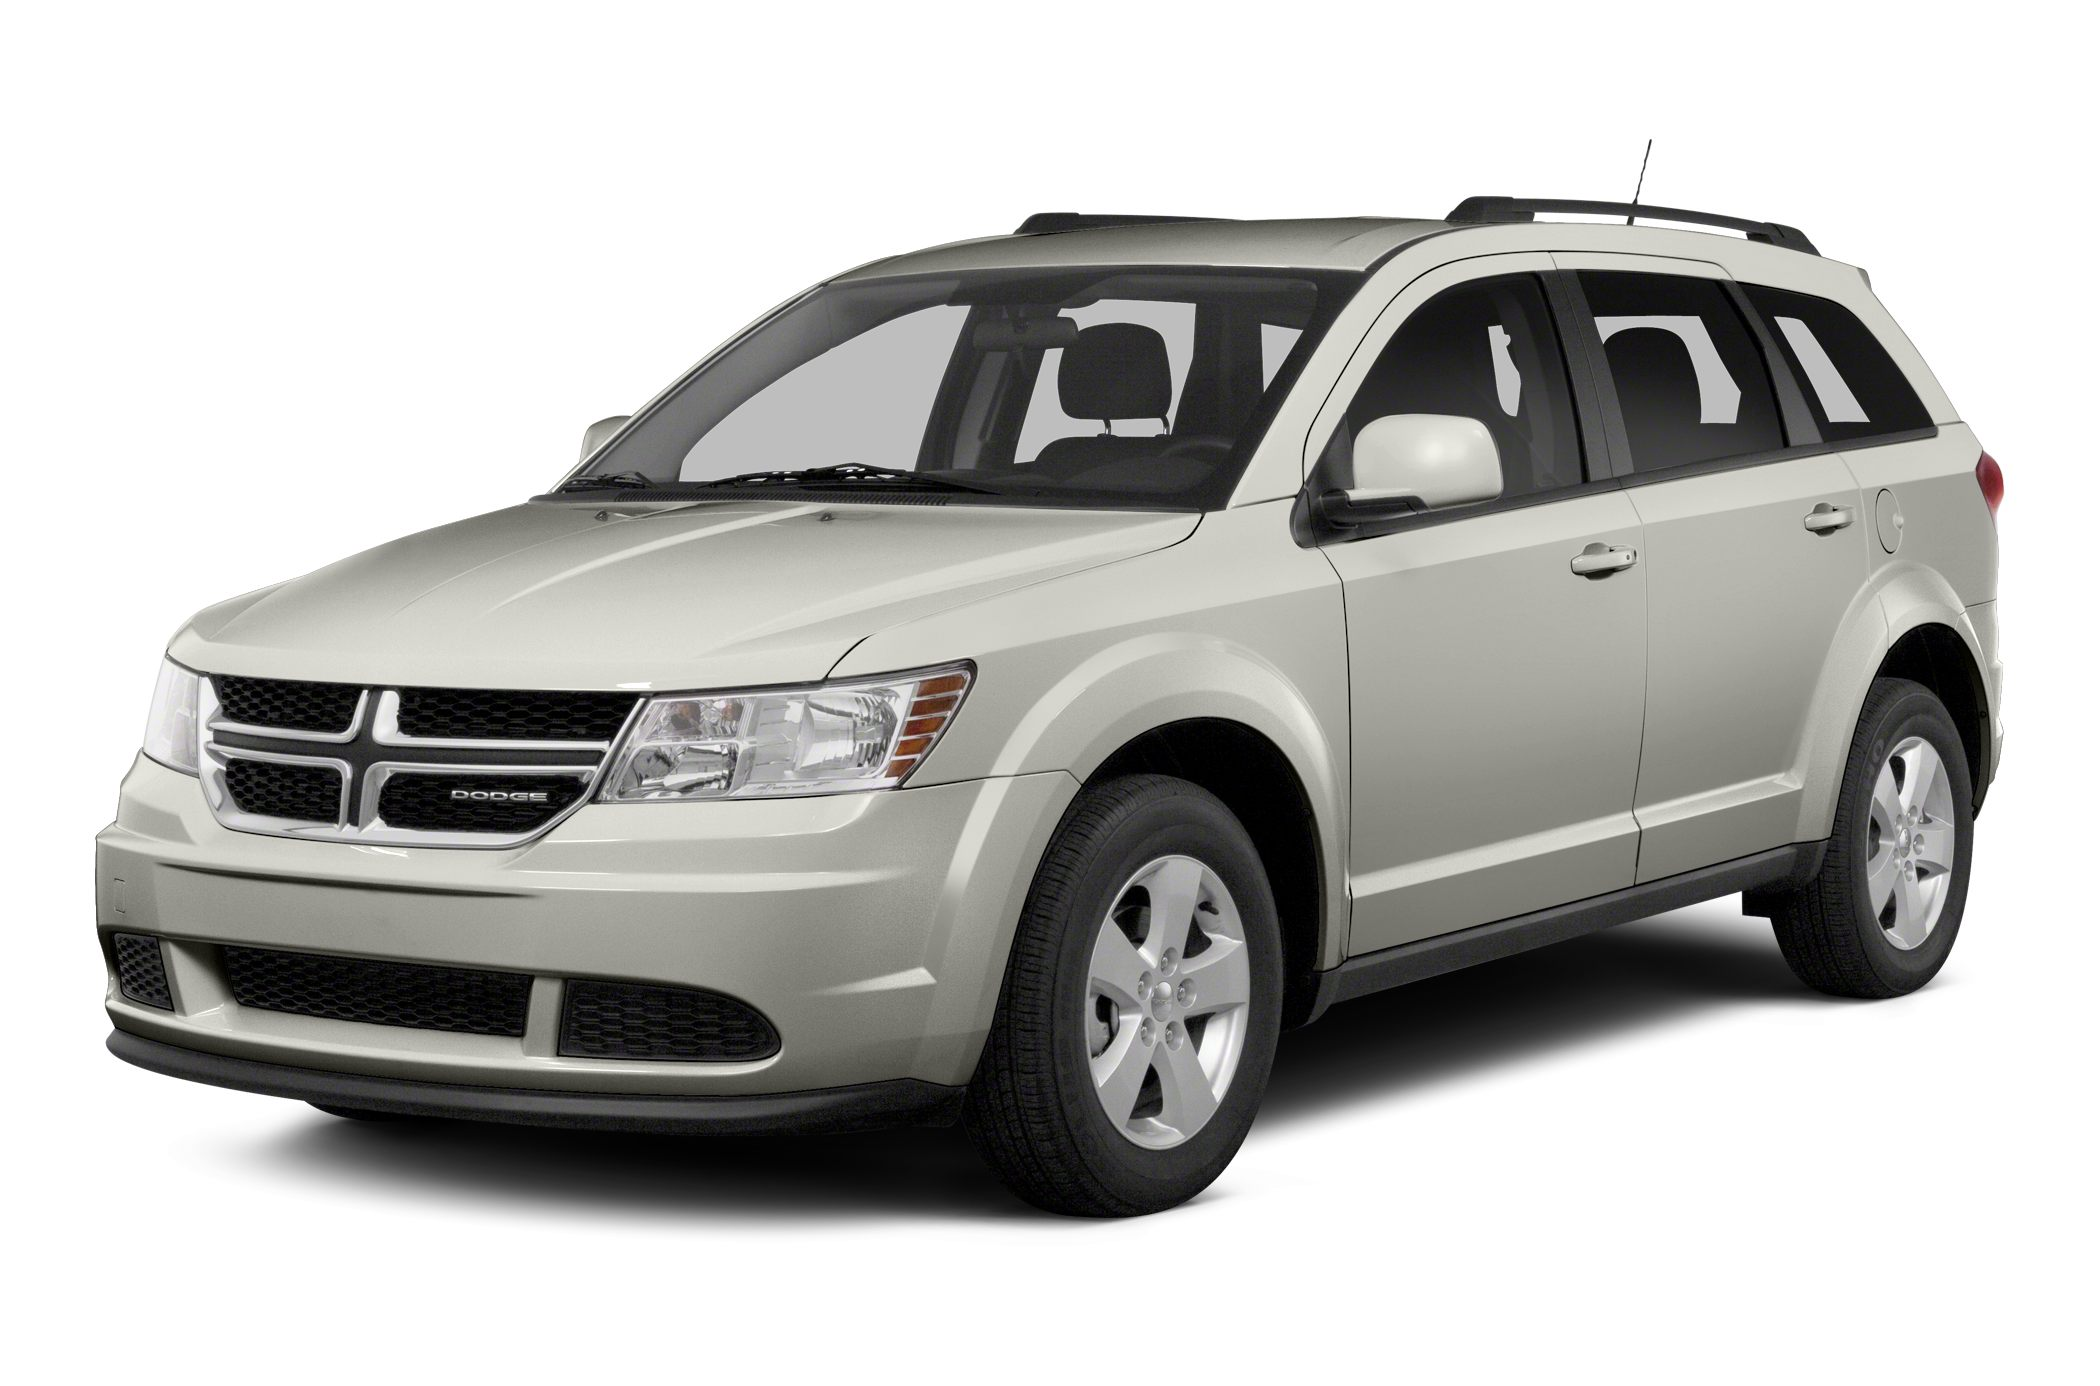 2013 Dodge Journey SXT SUV for sale in Fredericksburg for $18,500 with 24,524 miles.